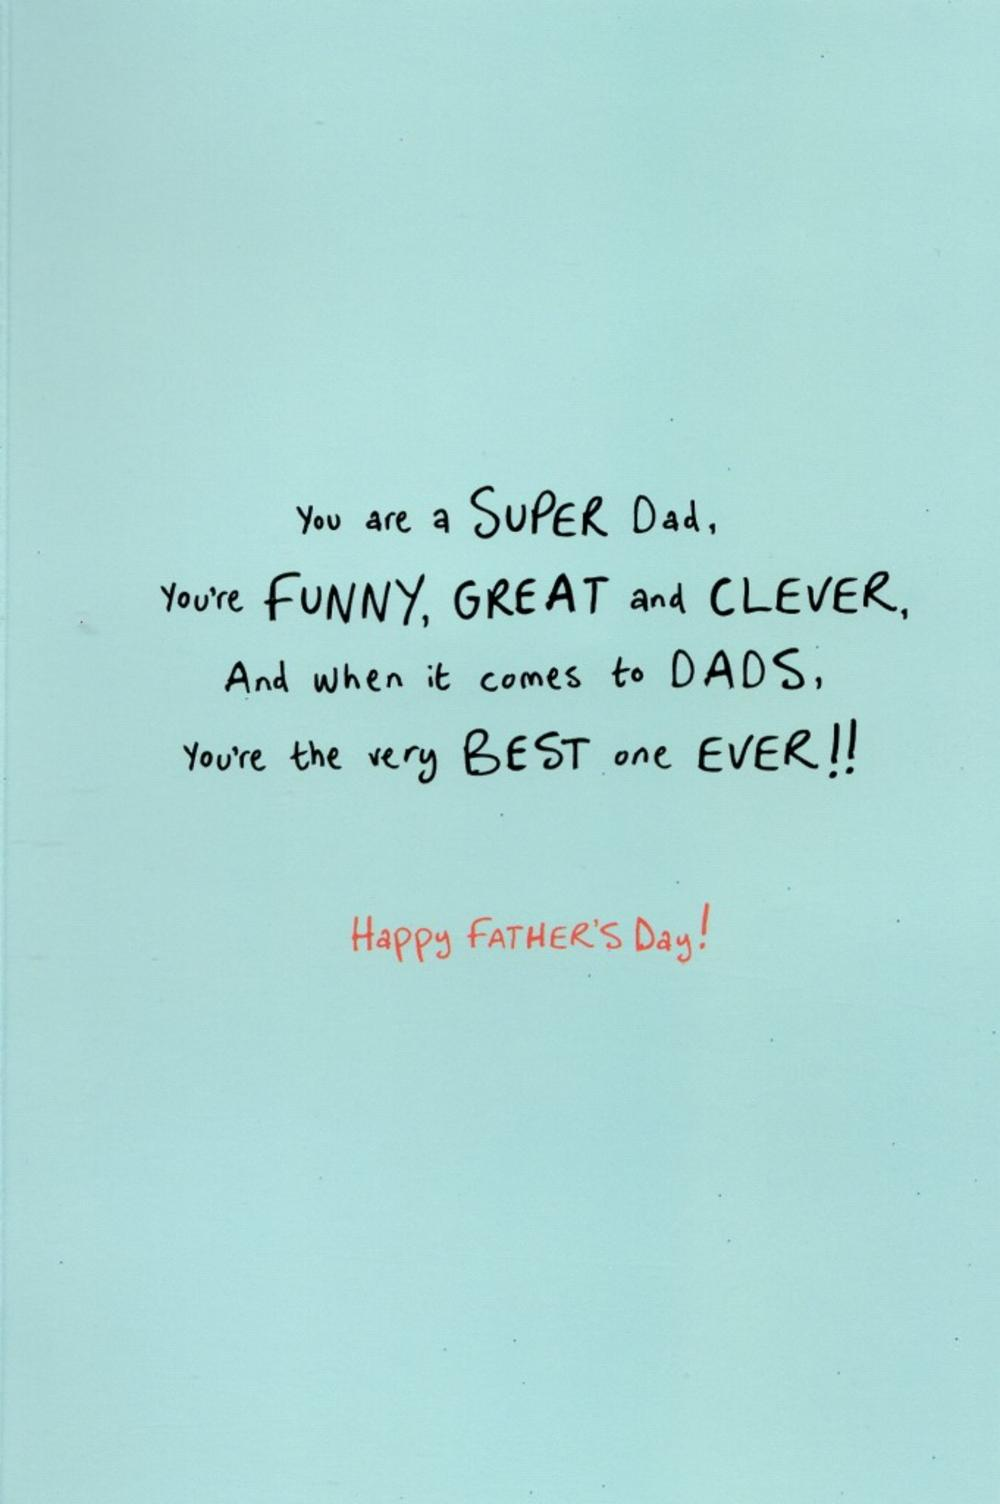 Super Dad Cute My Monster Happy Fathers Day Card Cards Love Kates